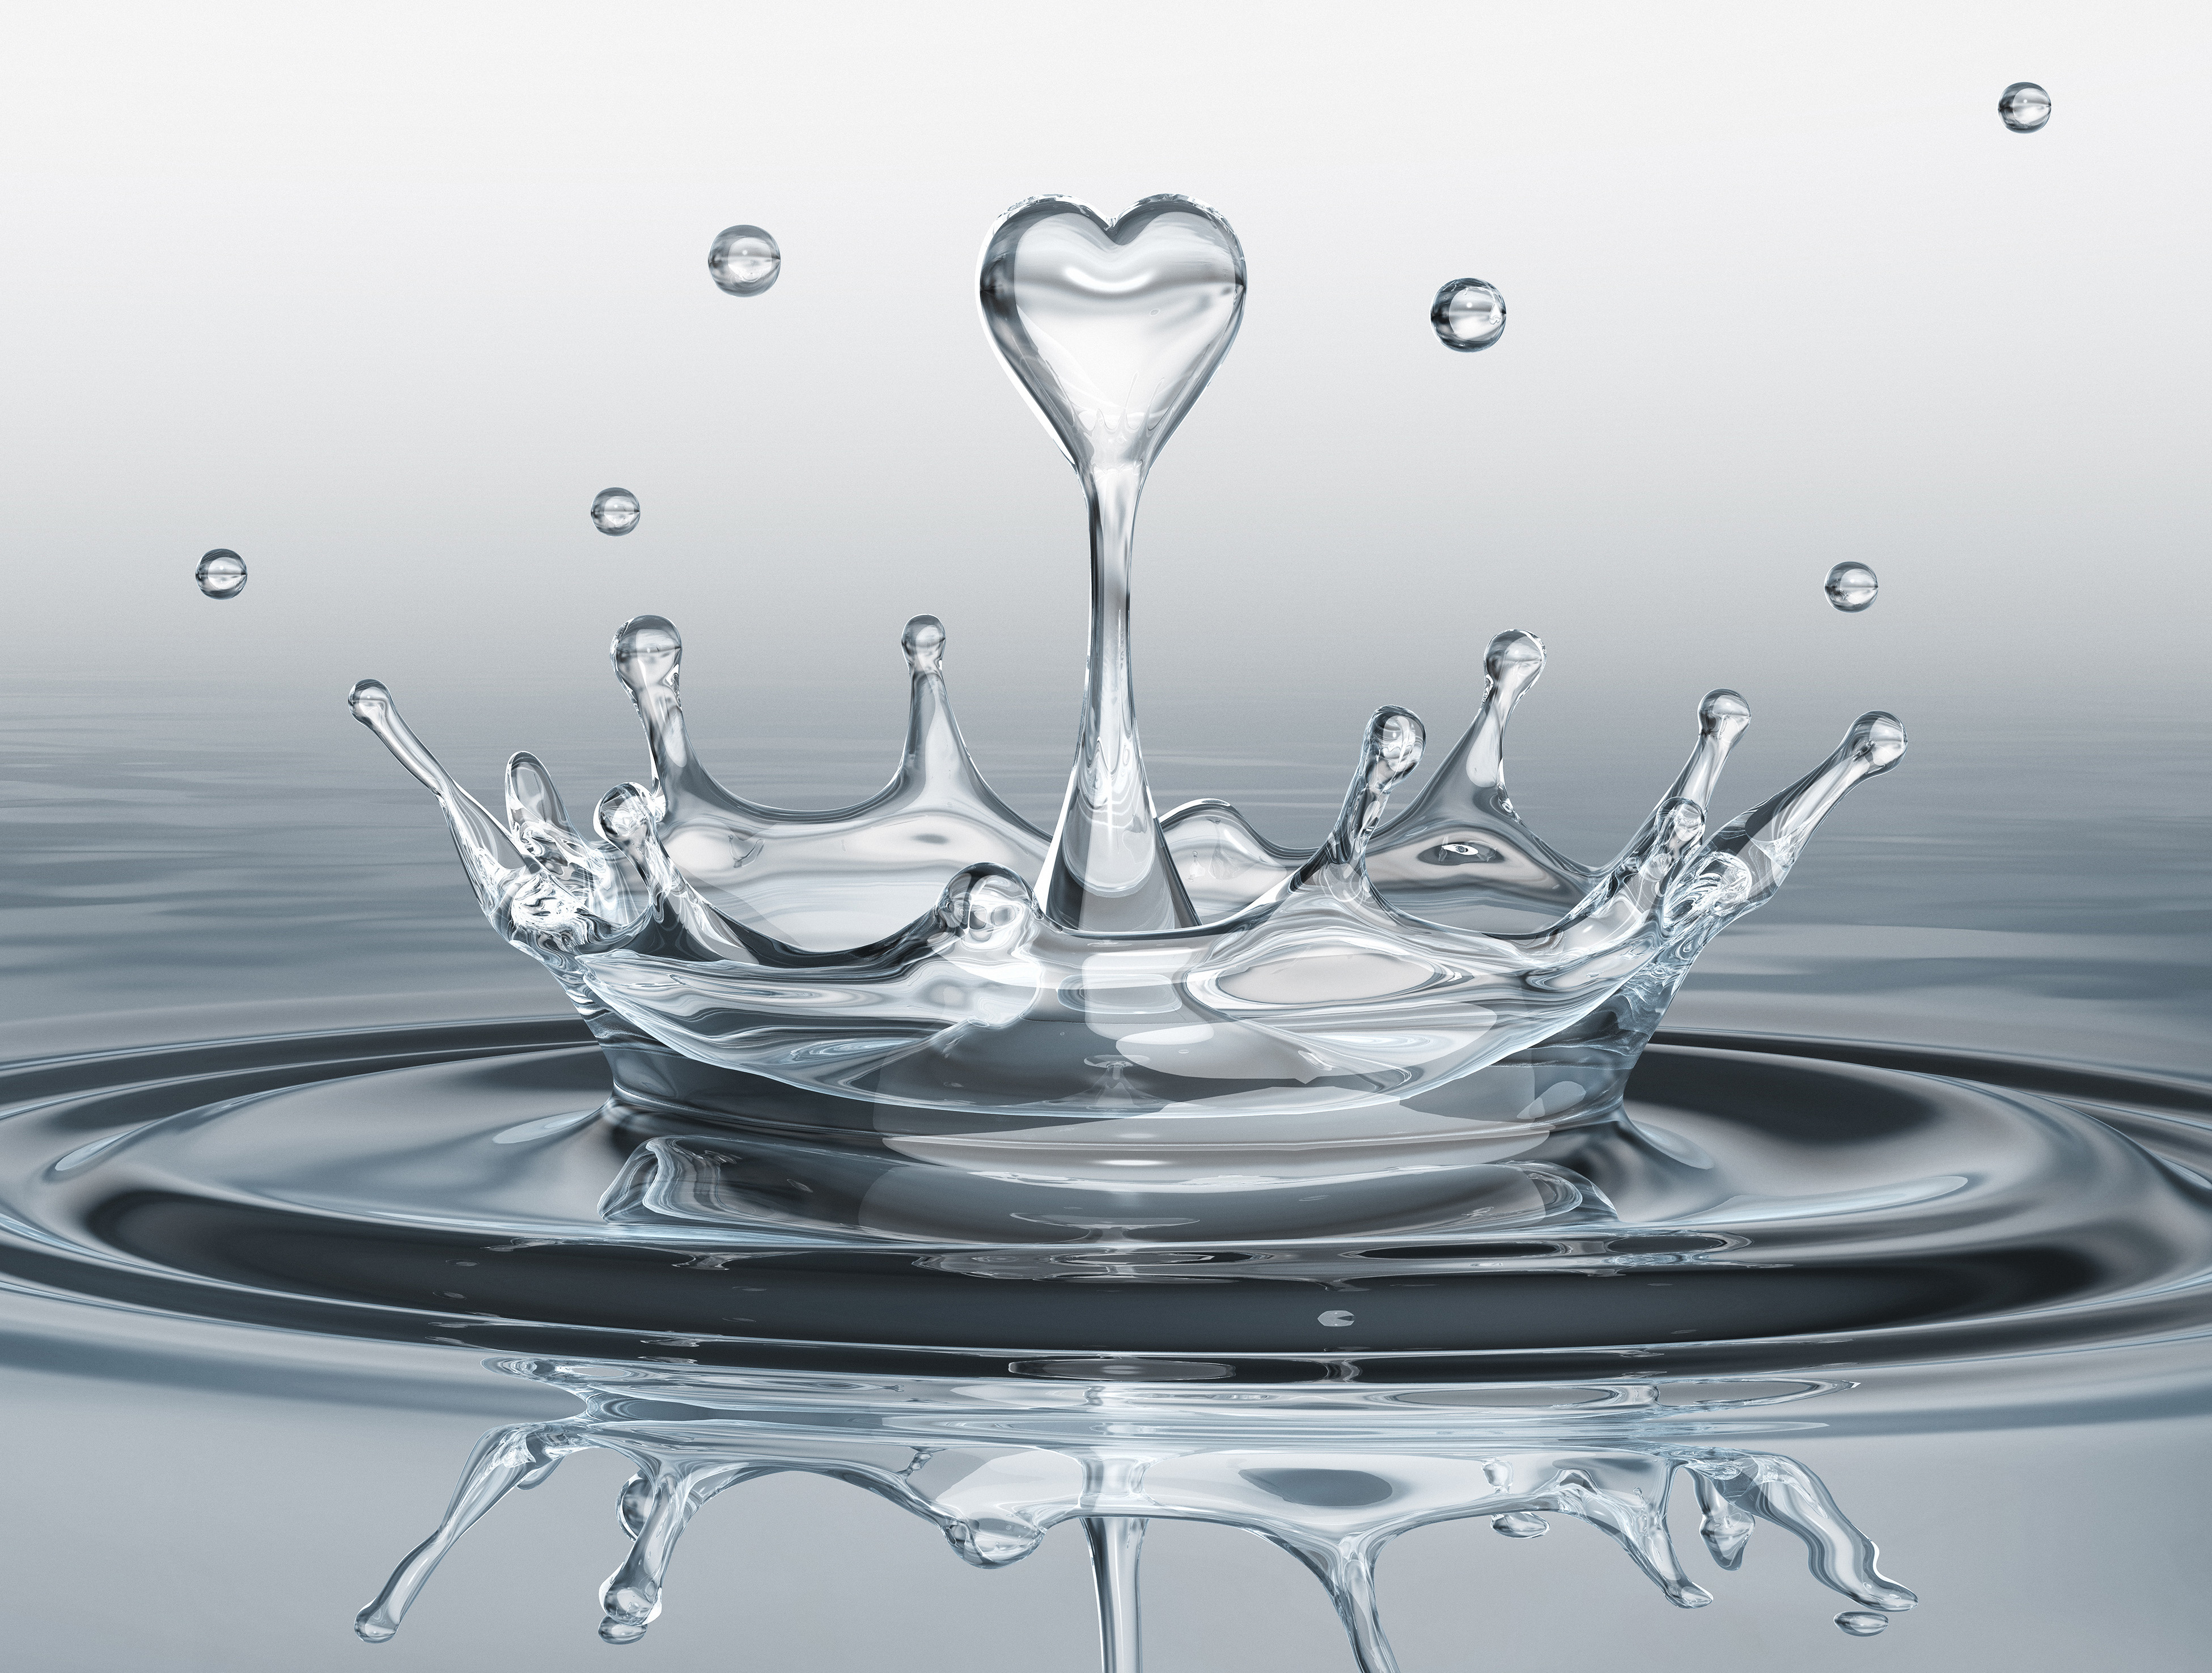 Water splash in form of heart